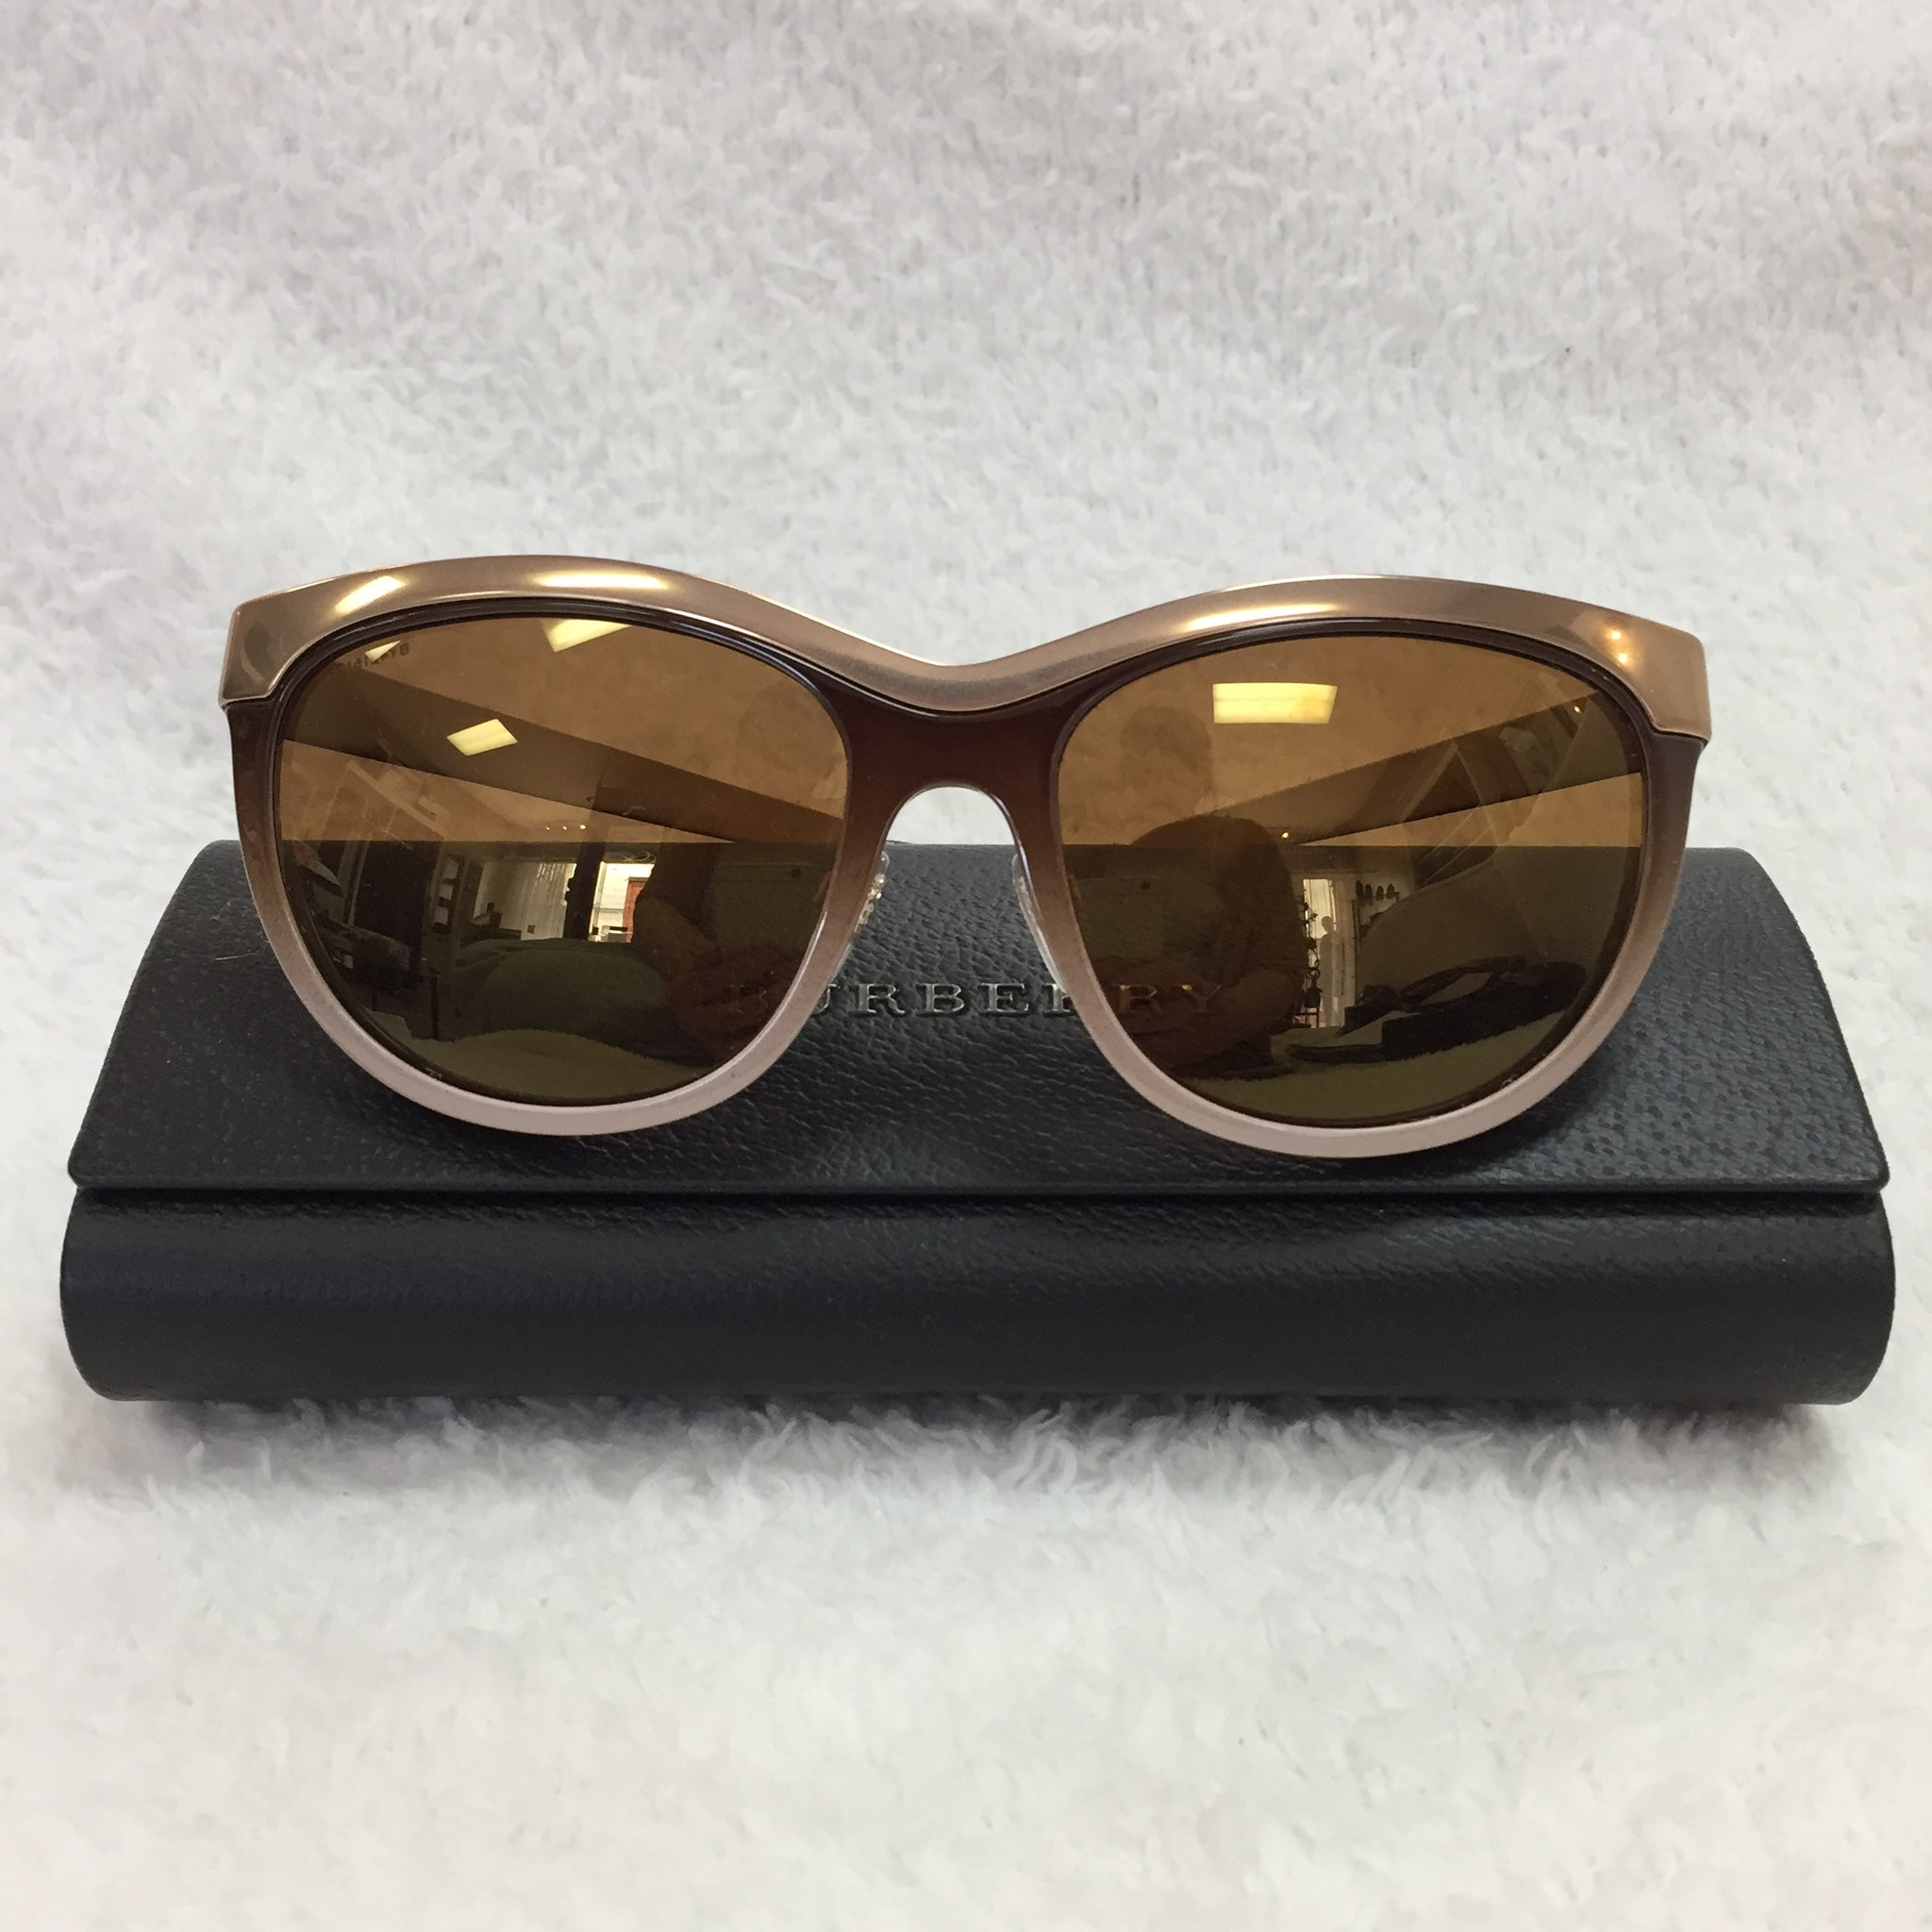 a7ed91ba39b3 ... Load image into Gallery viewer, Burberry Bronze Cat Eye Sunglasses ...